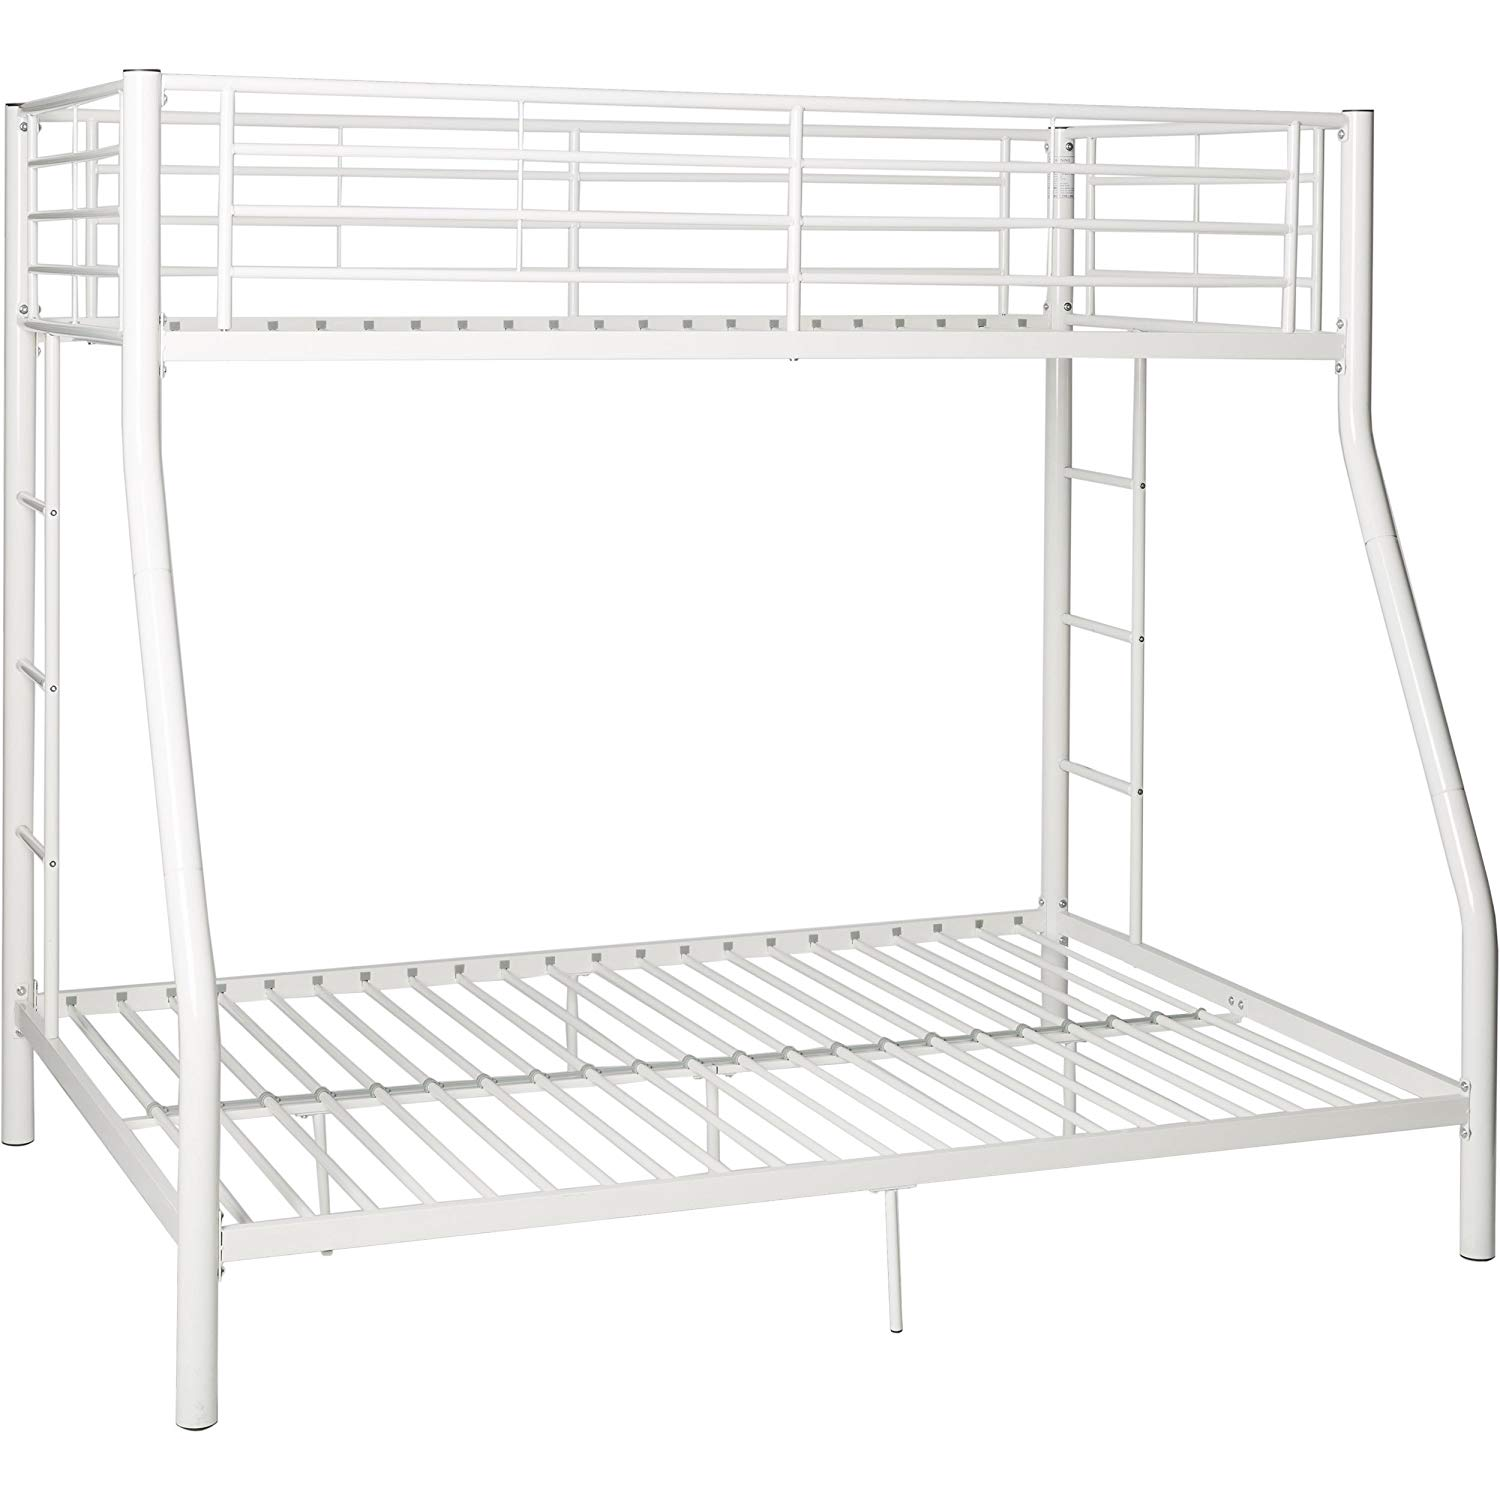 Cheap Ikea White Metal Bed Find Ikea White Metal Bed Deals On Line At Alibaba Com